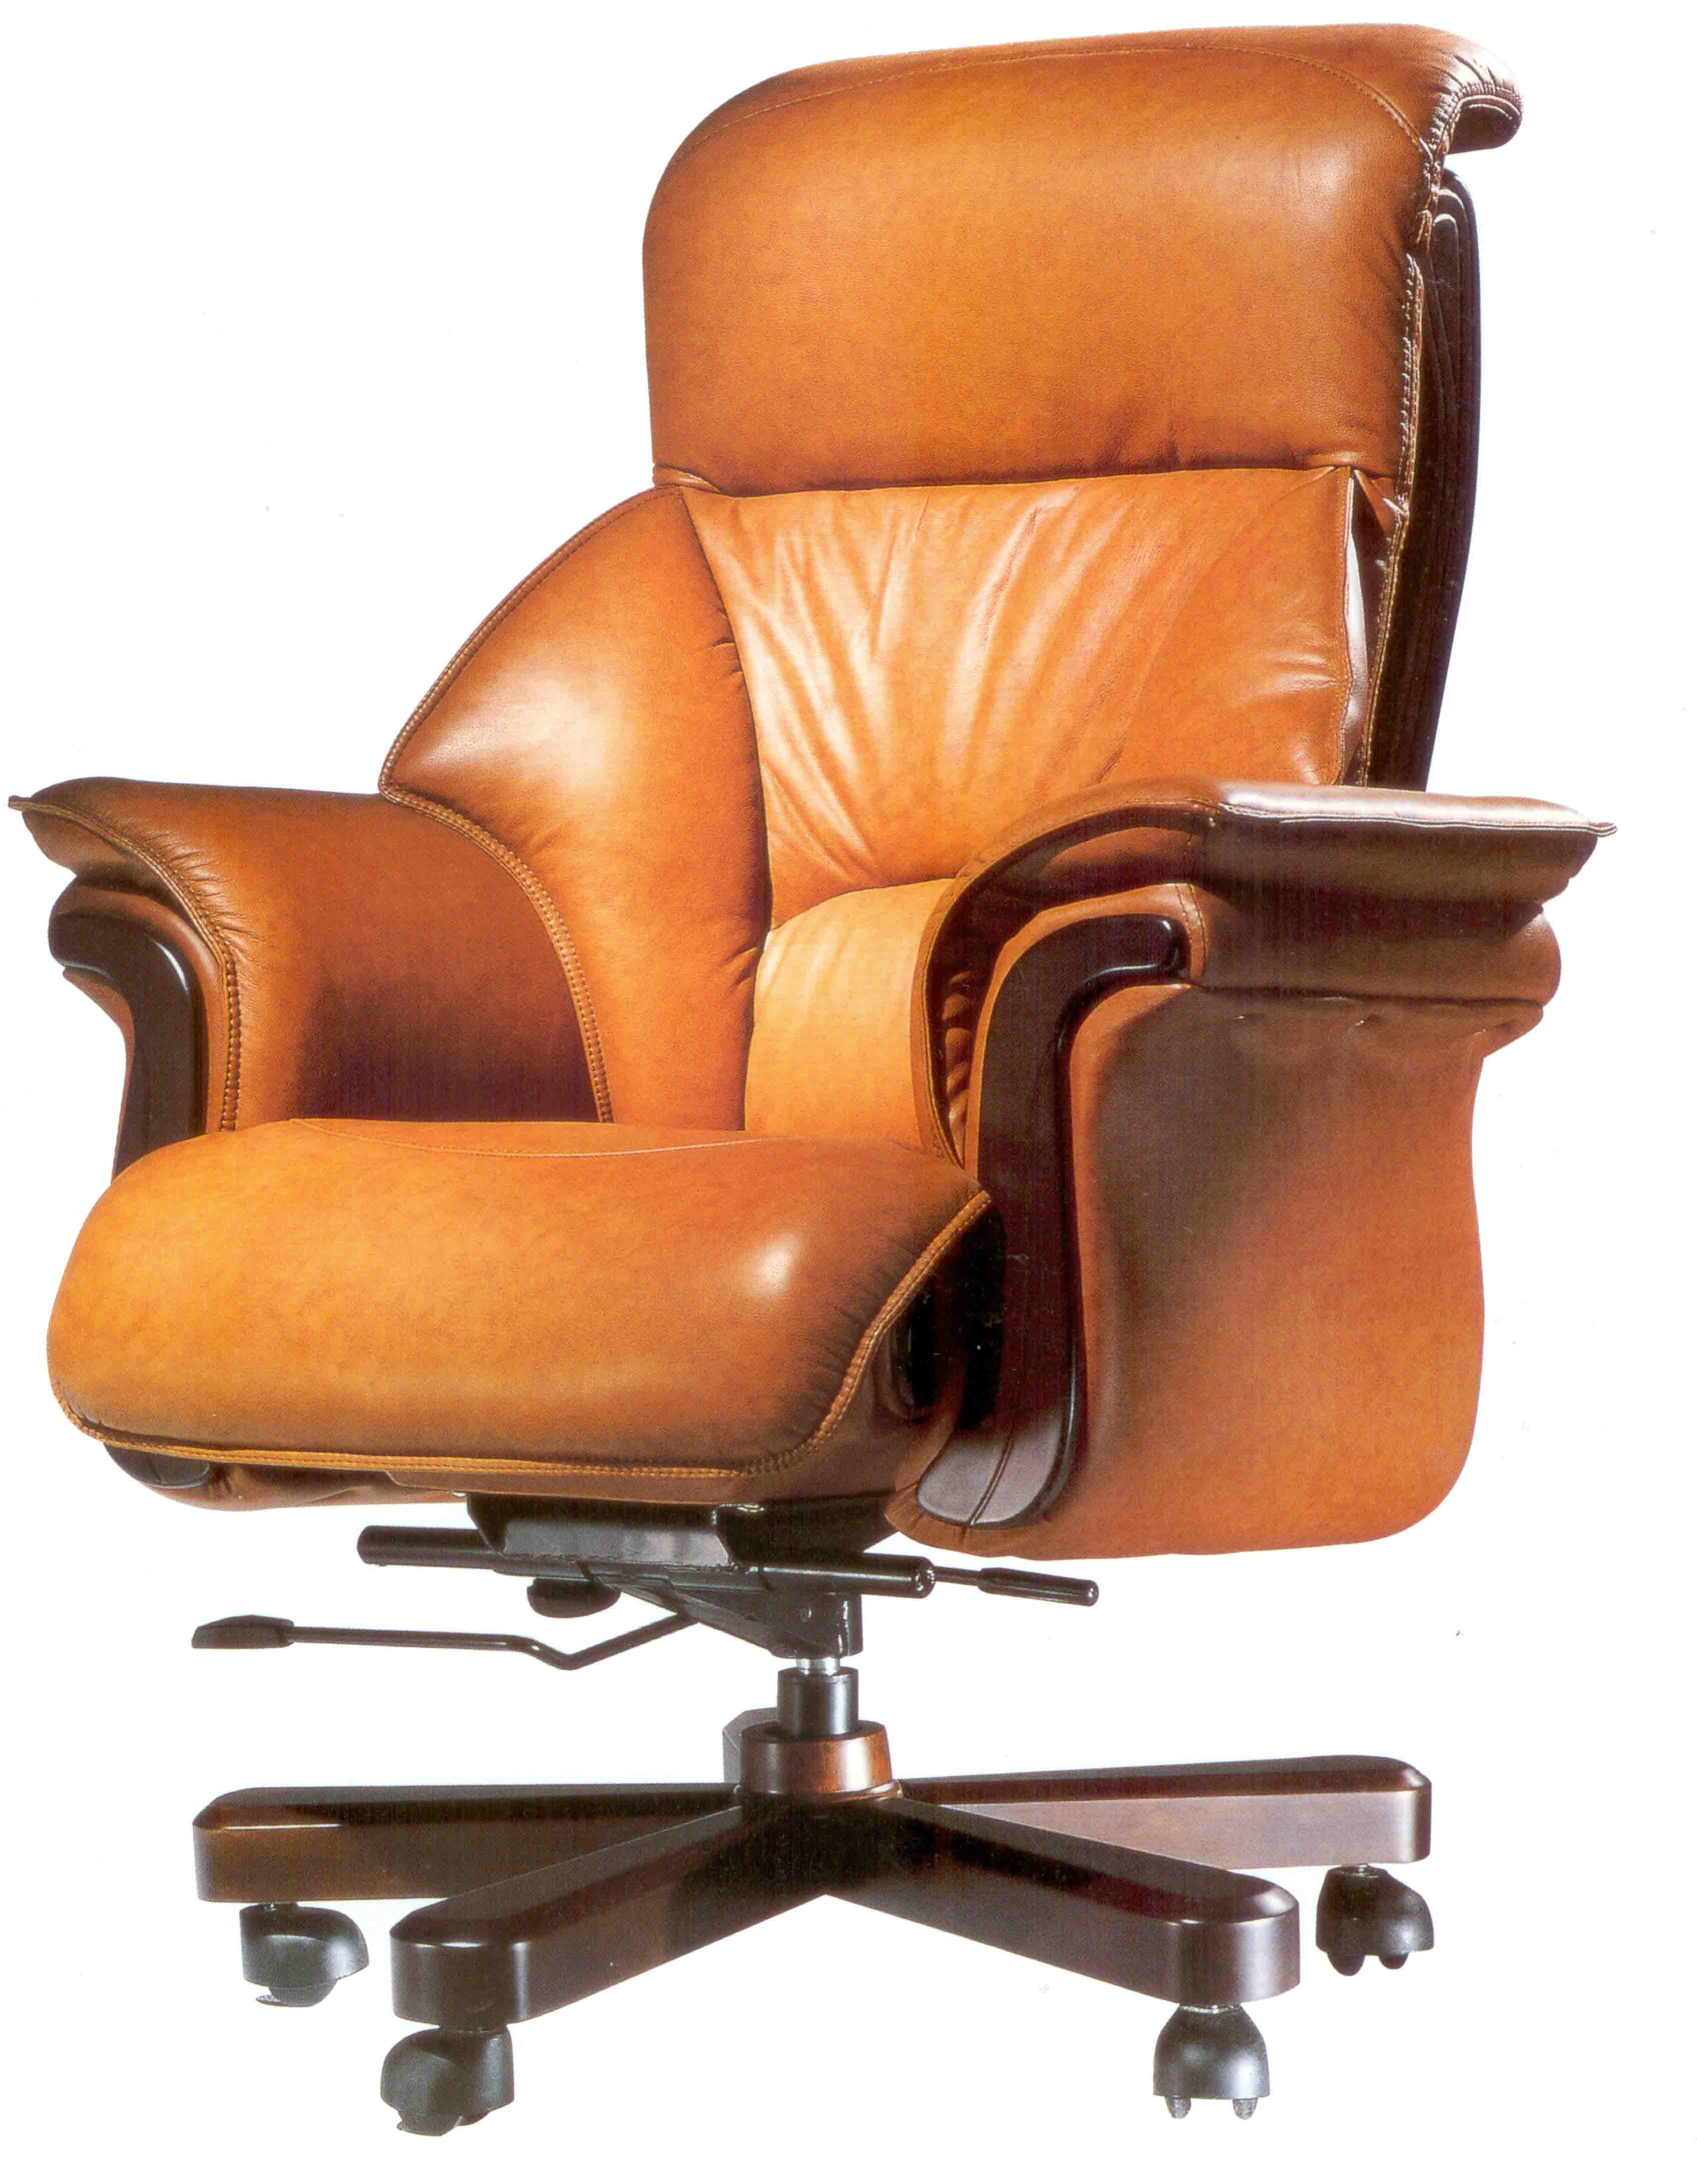 Leather Executive Chair Office Furniture Office Chairs Macalinne